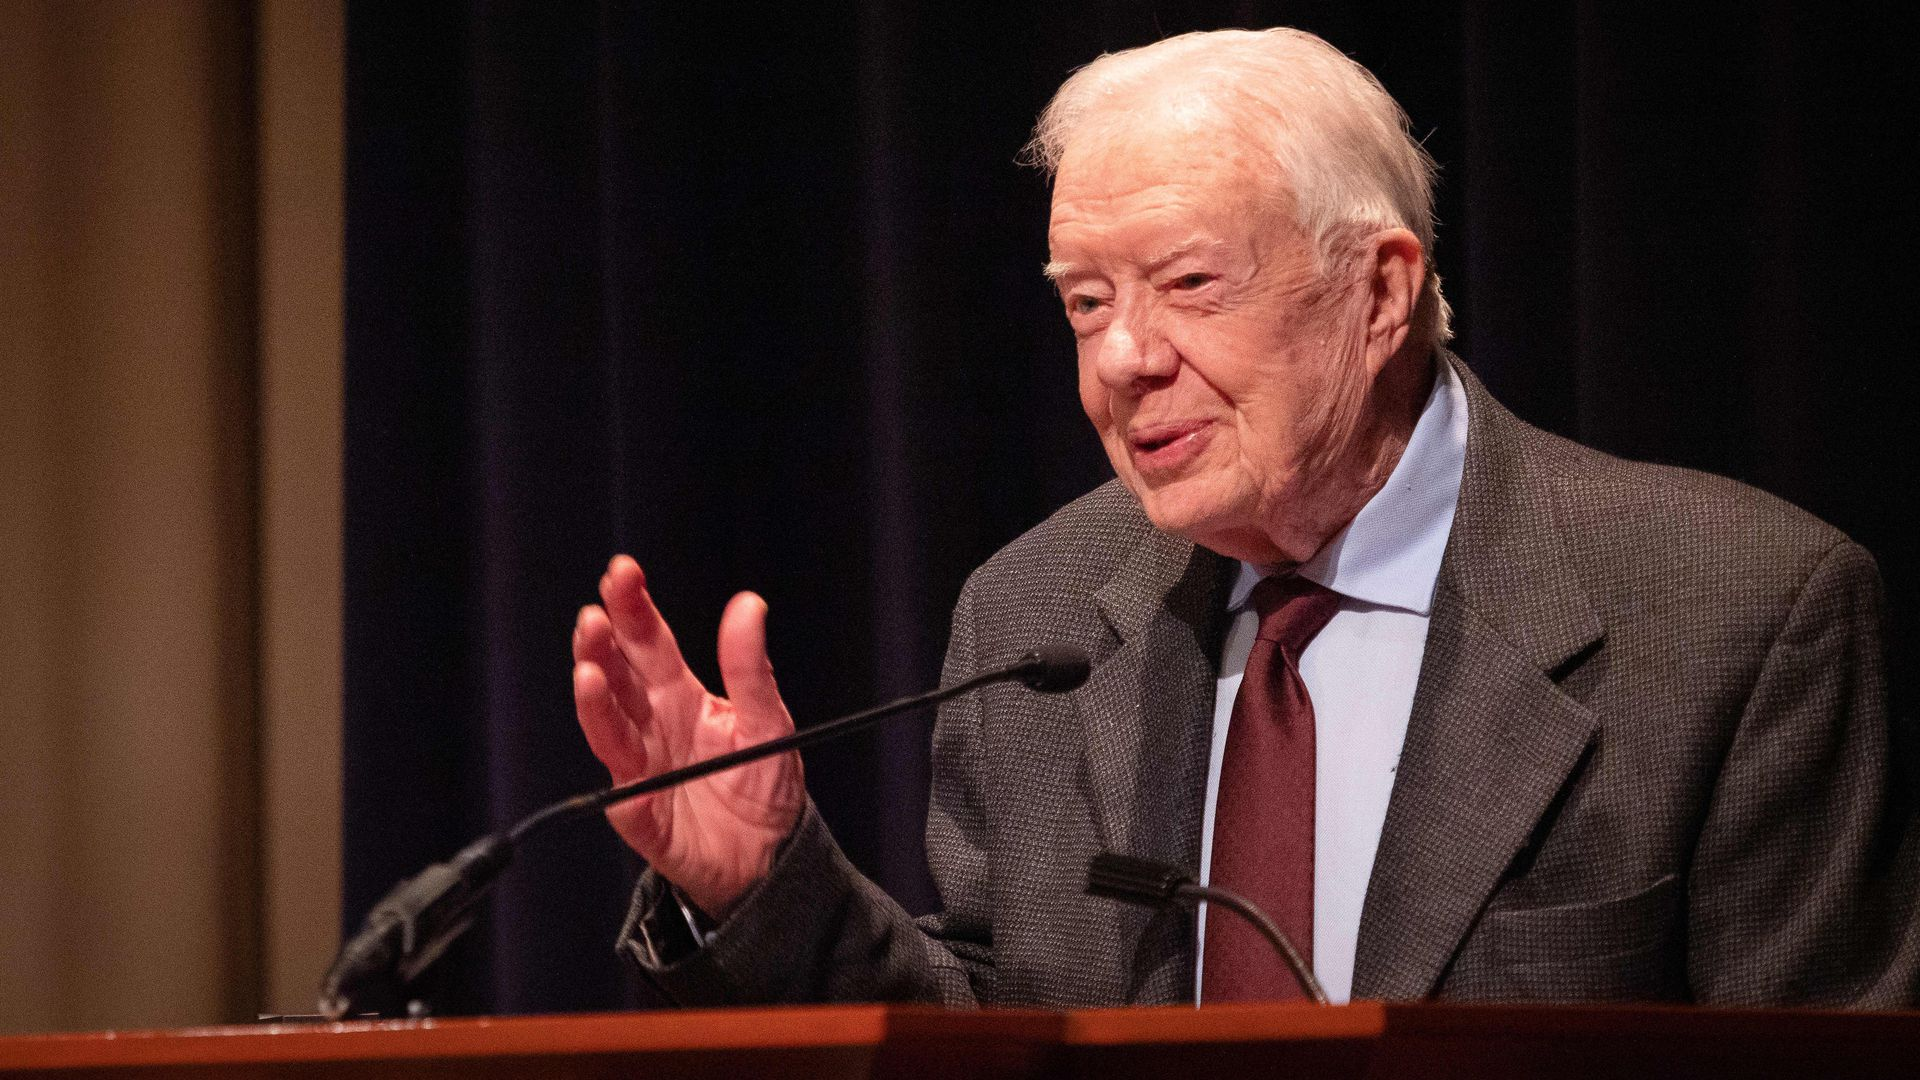 Former U.S. President Jimmy Carter speaksat the Carter Center on January 18, 2019 in Atlanta, the United States.